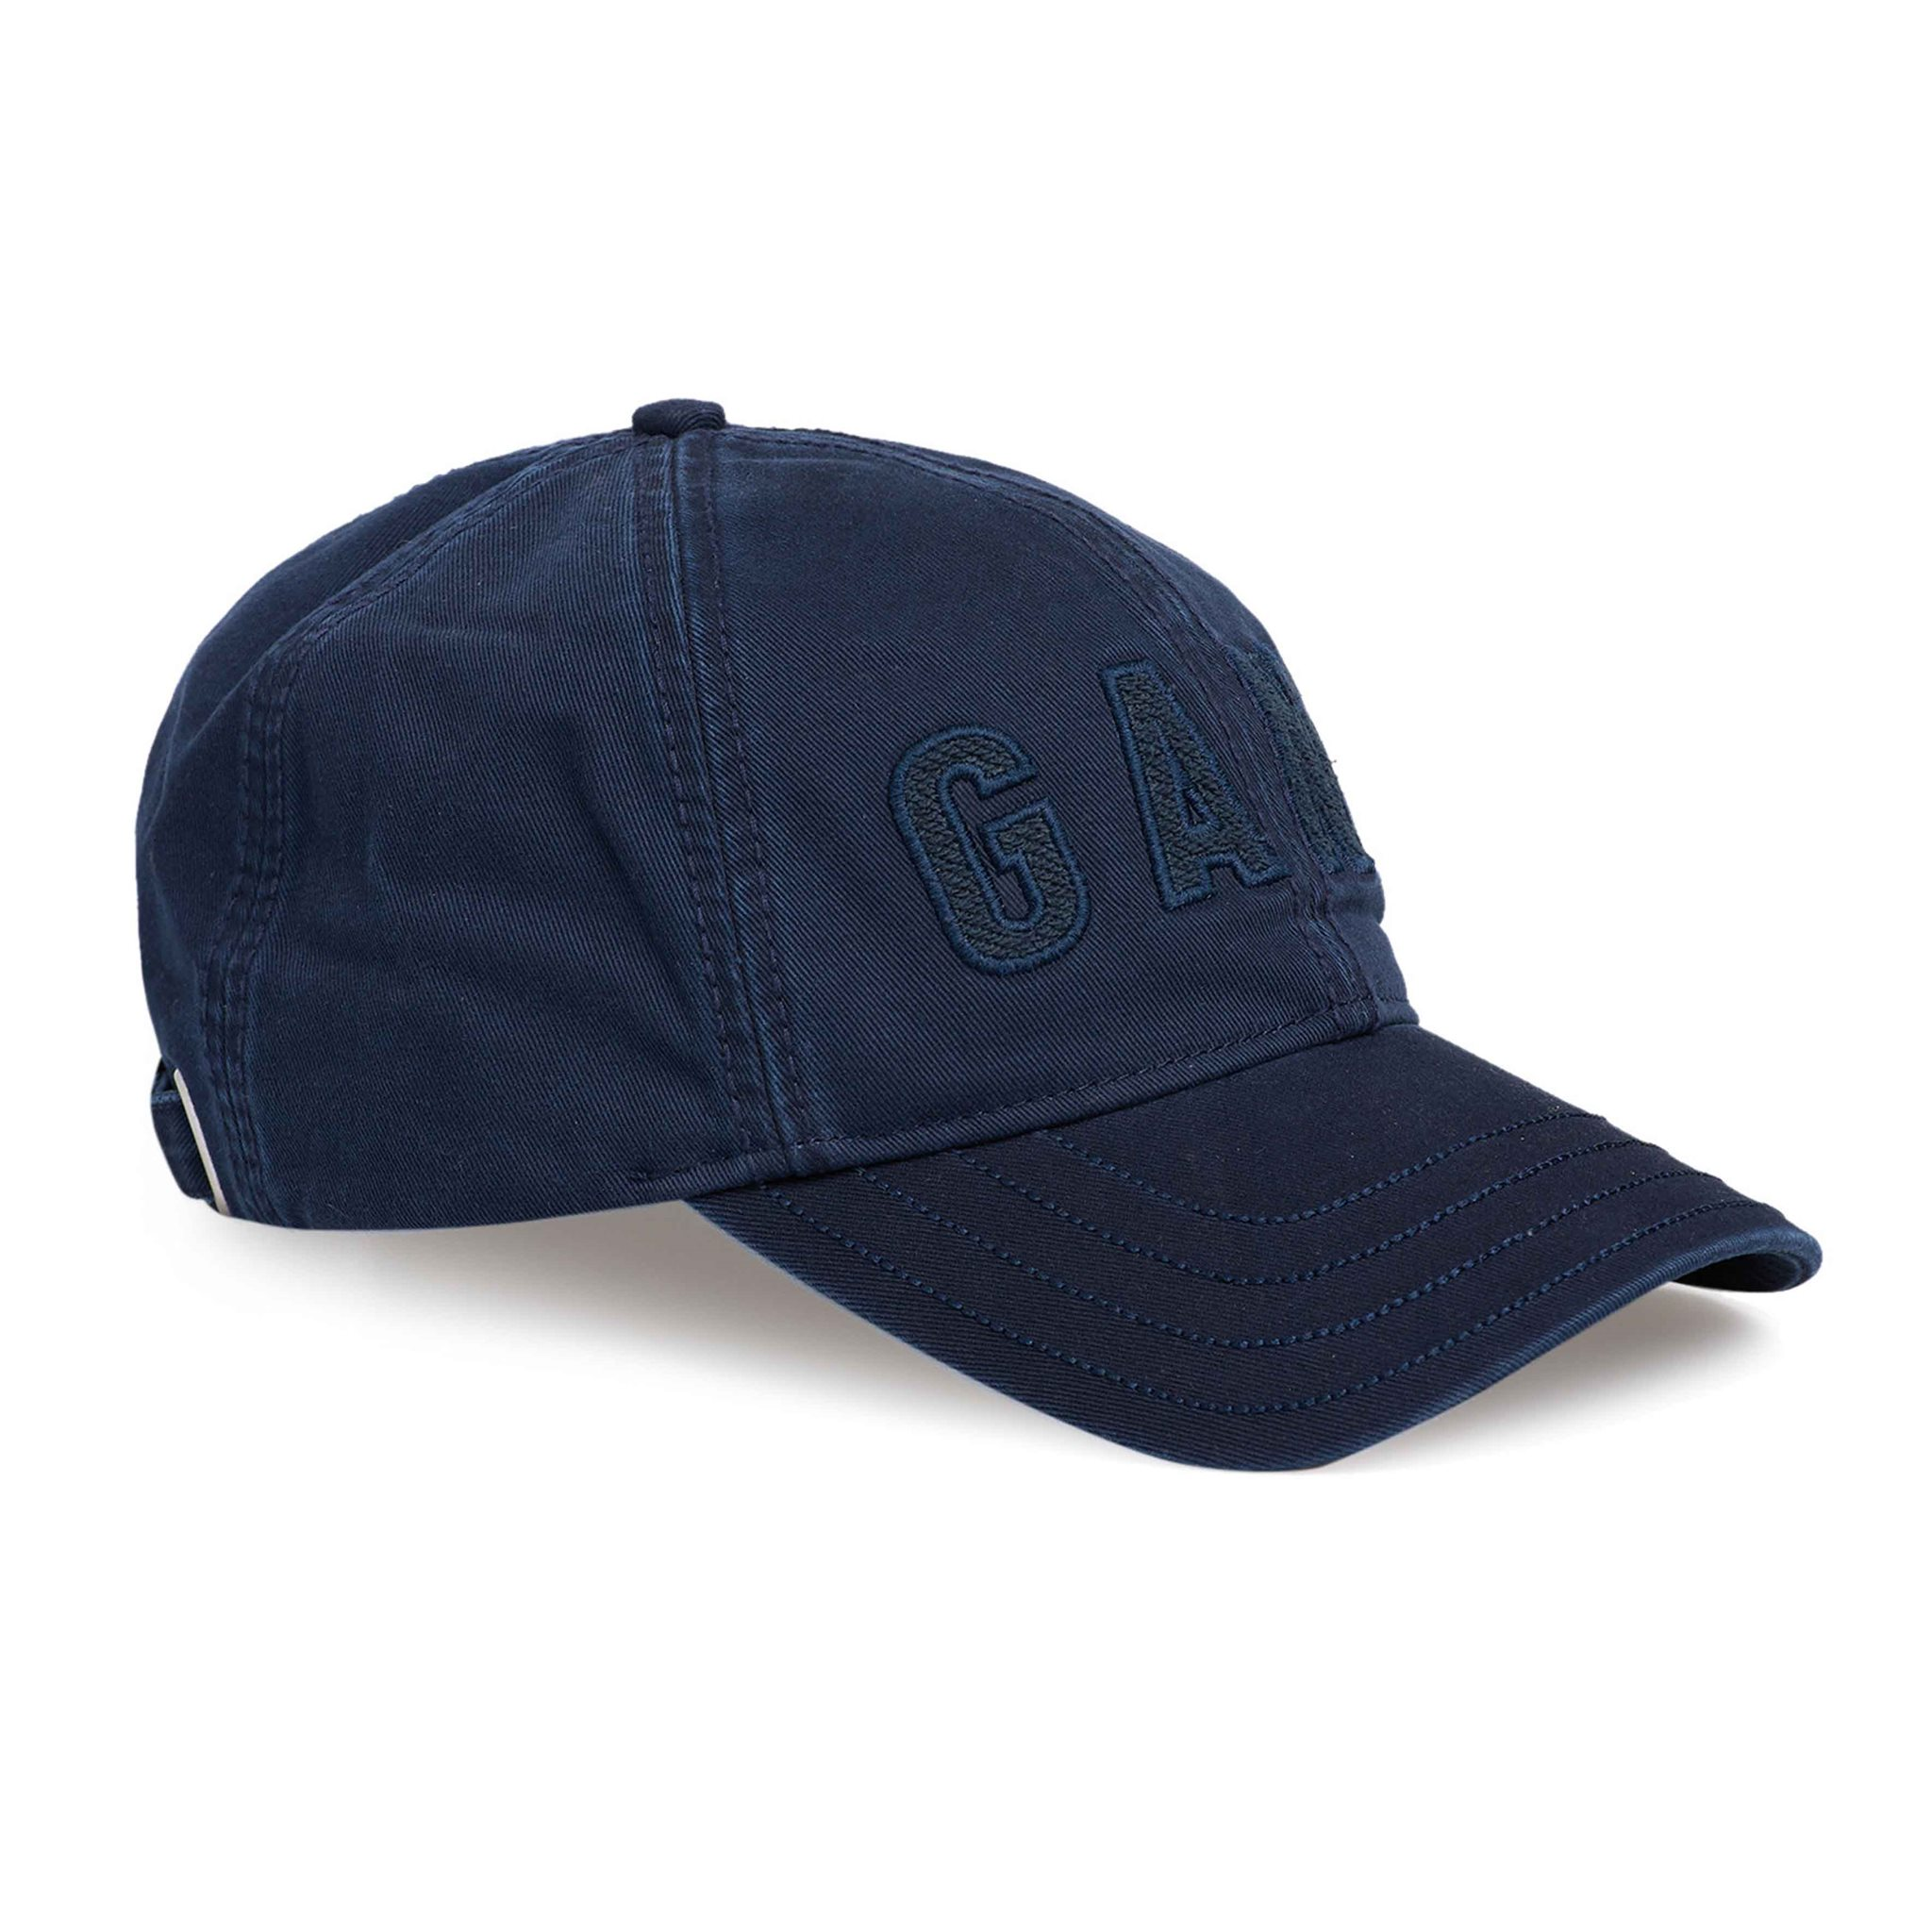 SUNFADED CAP GANT MAN